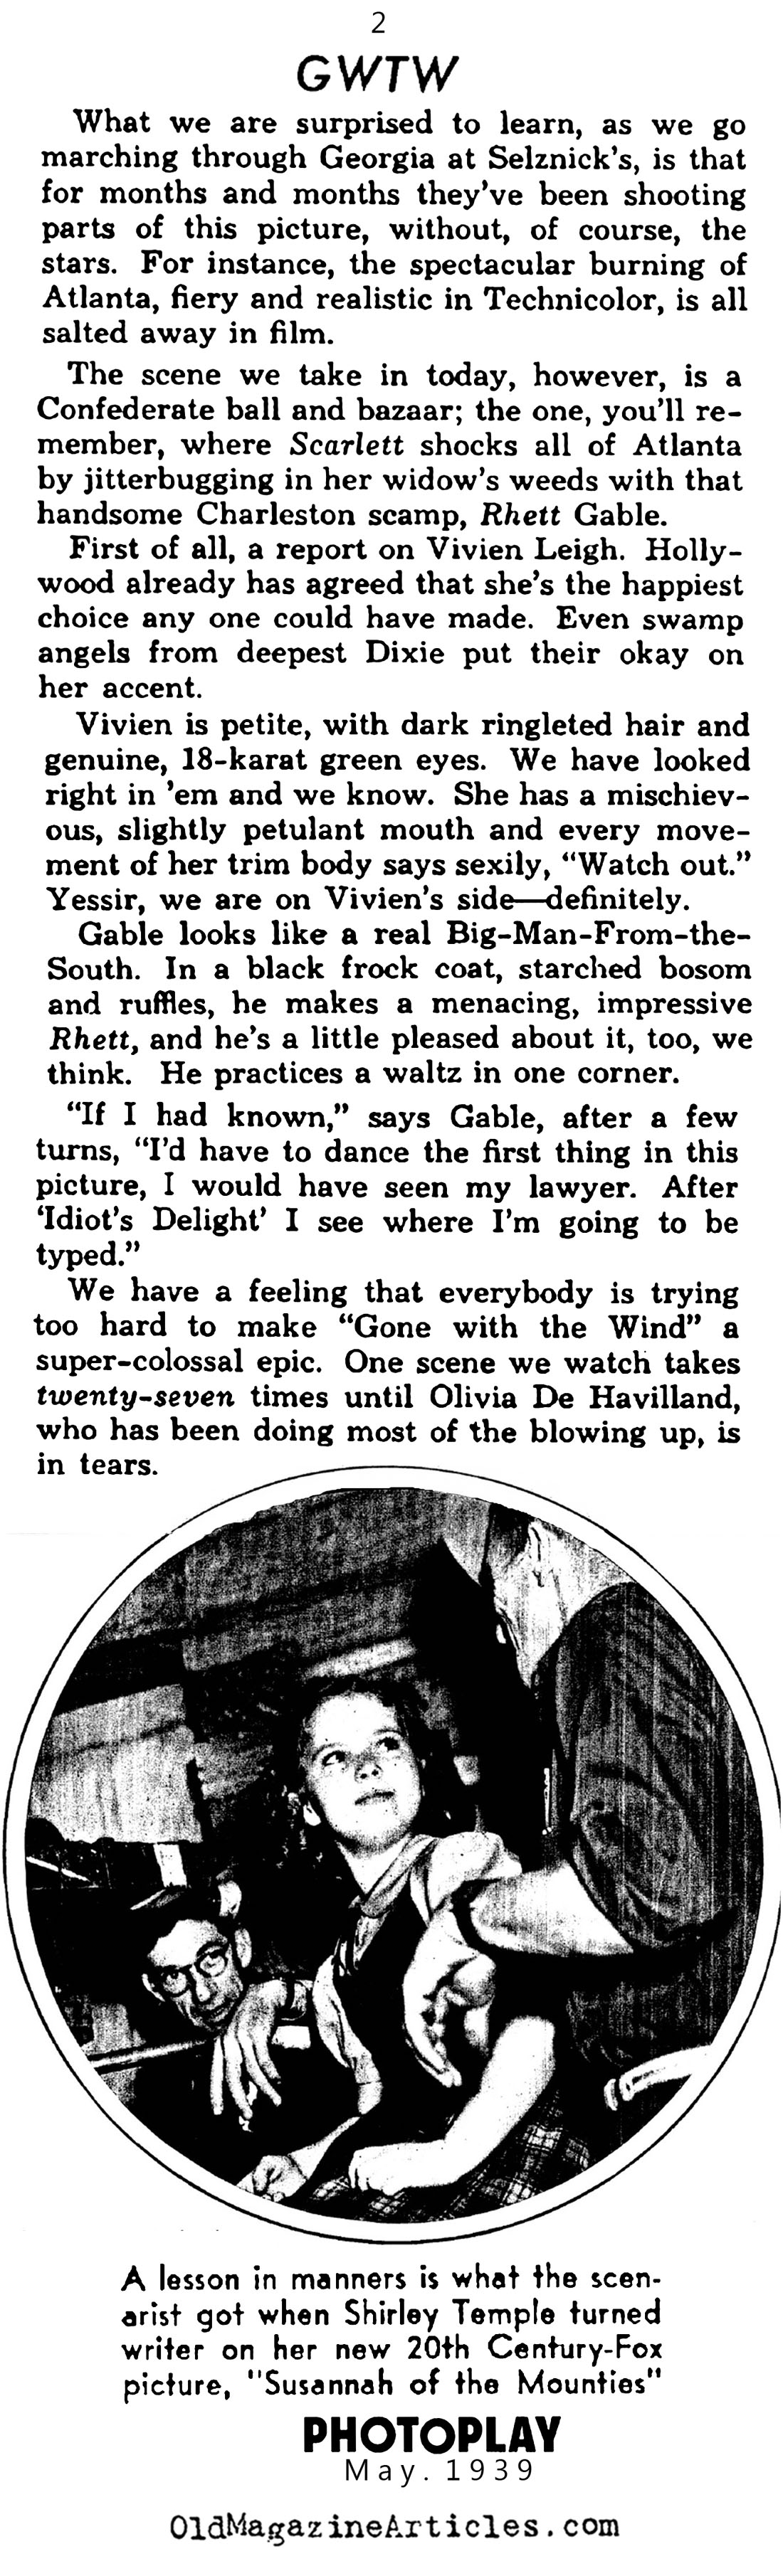 Gone with Wind Begins Shooting (Photoplay Magazine, 1939)